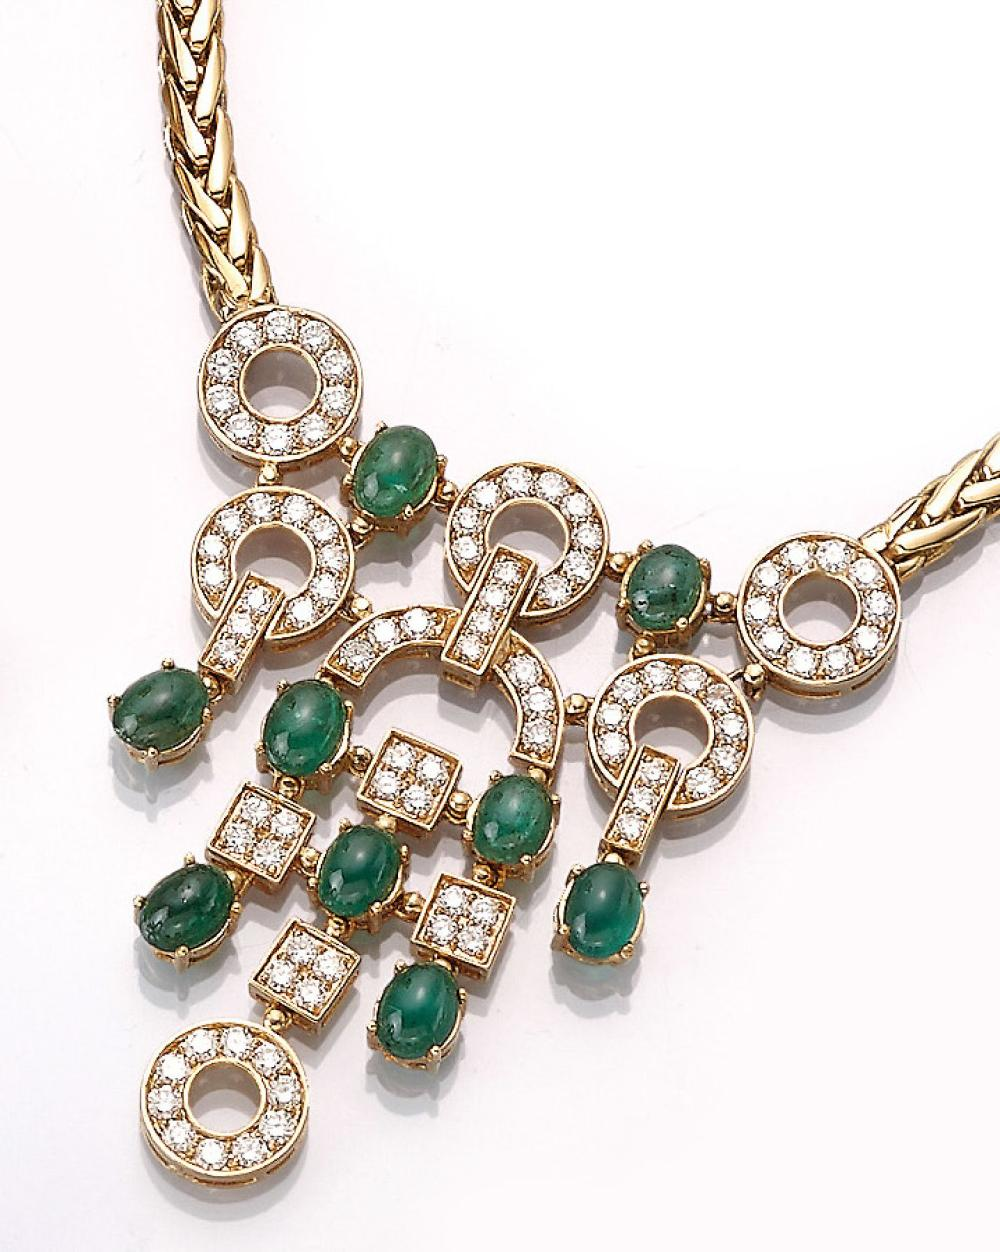 18 kt gold necklace with emeralds and brilliants